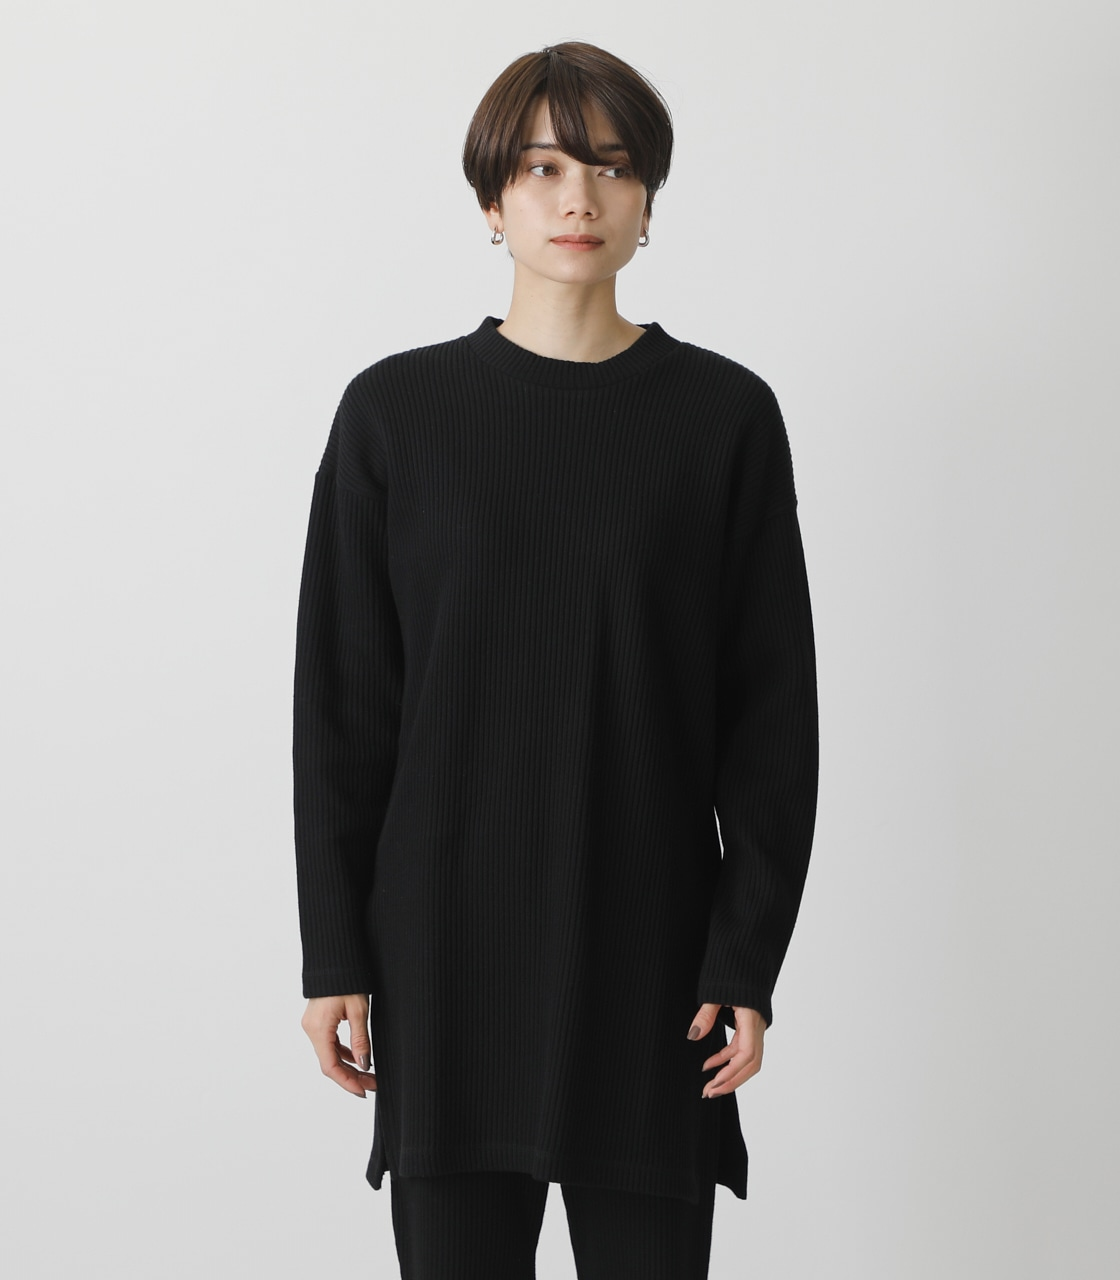 T/H SIDE SLIT LONG TOPS/T/Hサイドスリットロングトップス 詳細画像 BLK 5